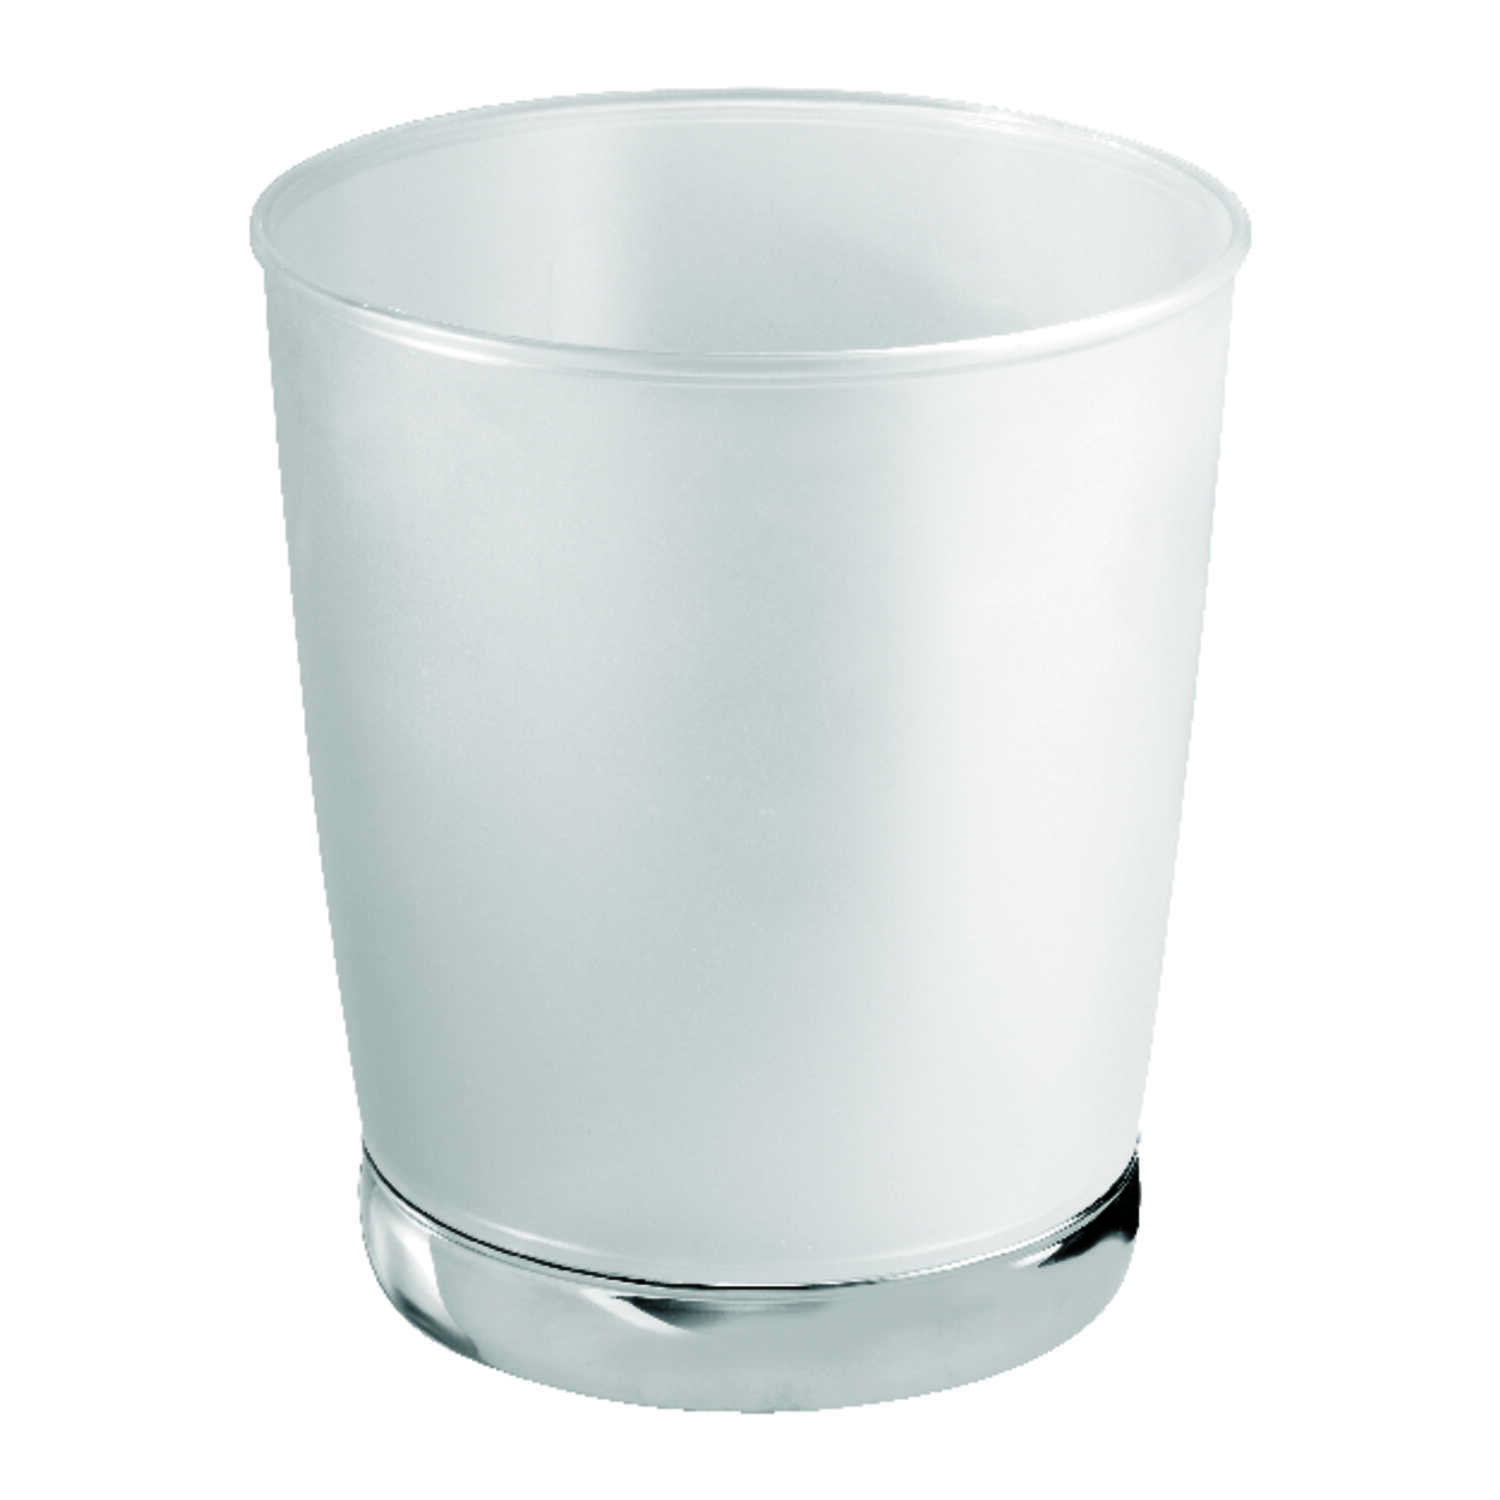 InterDesign  2.4 gal. Clear  York  Wastebasket